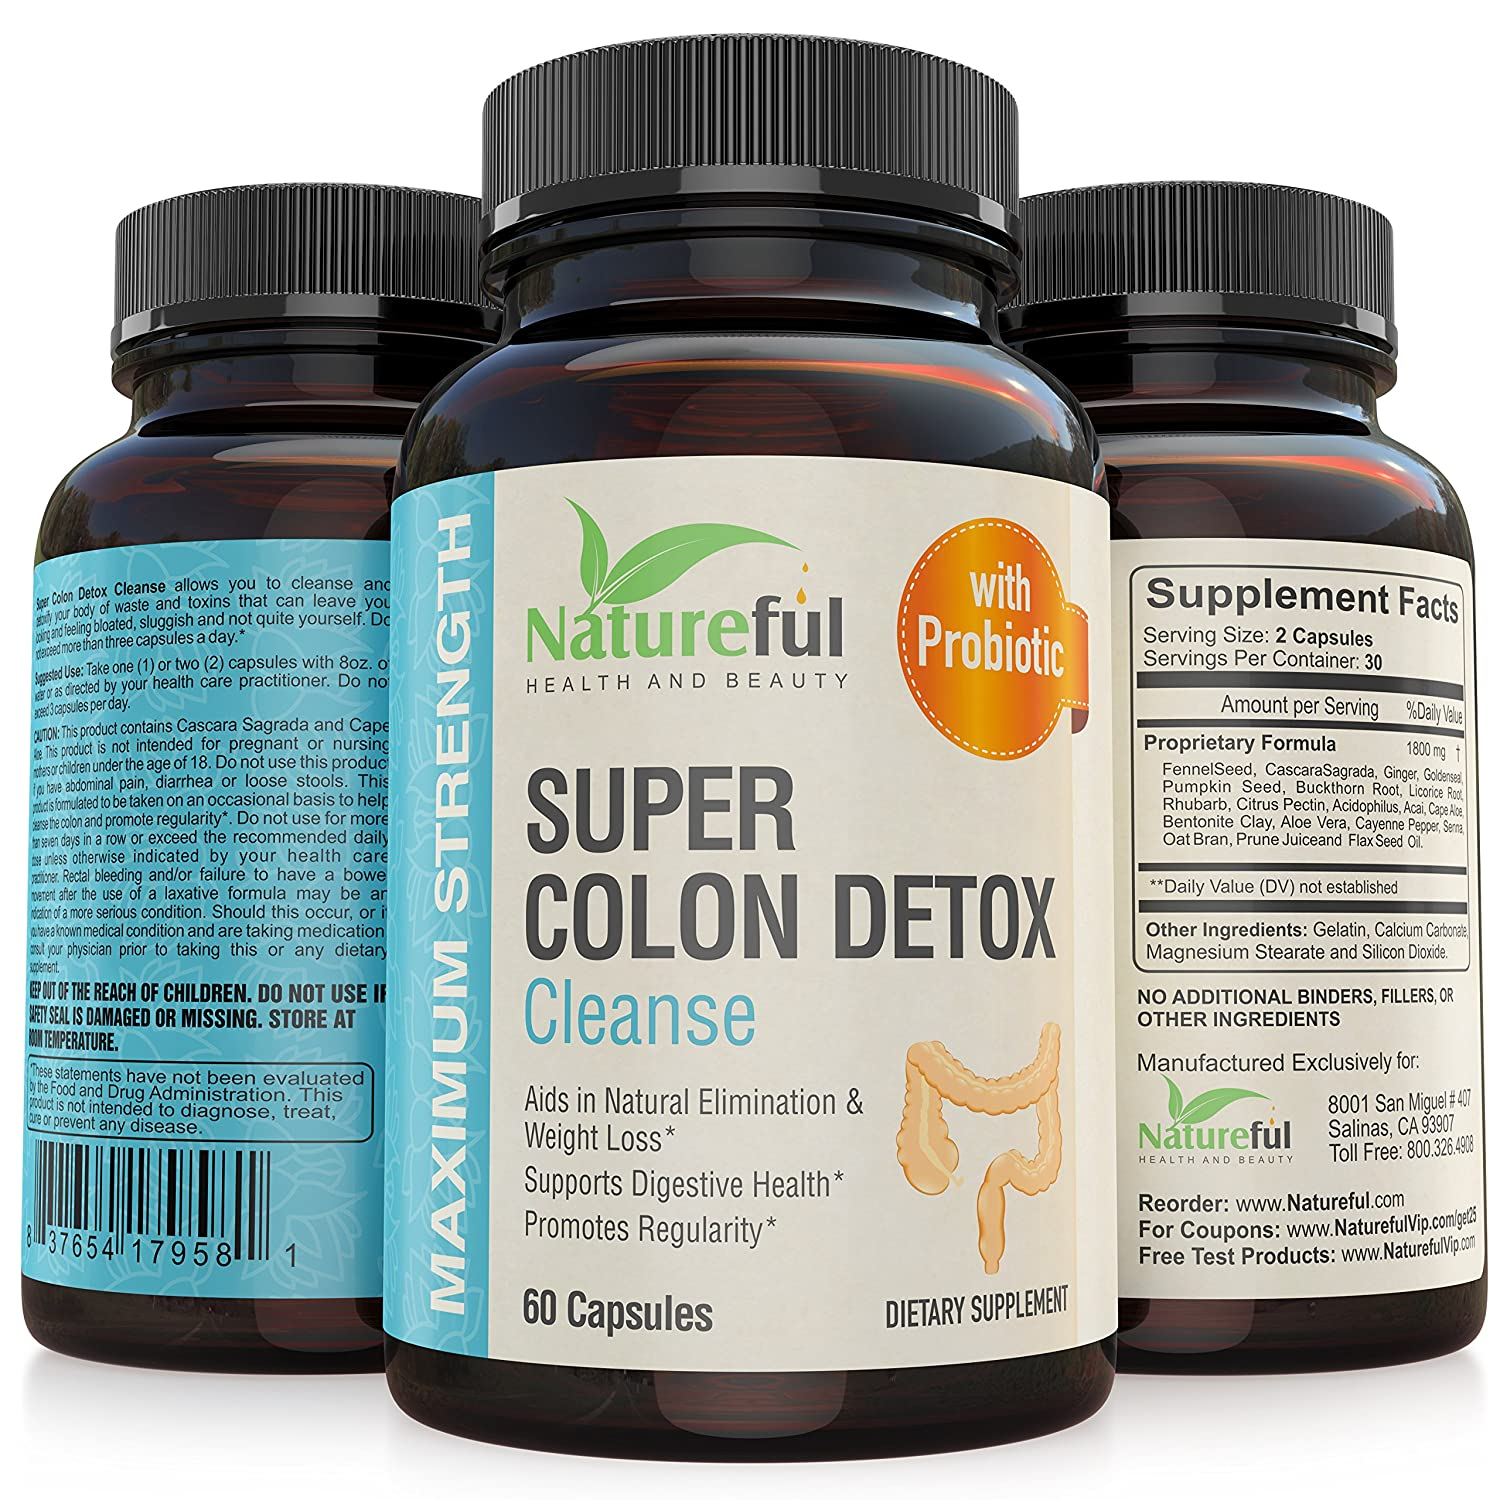 Amazon.com: Best Colon Cleanse for-Weight-Loss: Belly fat Burner for Women  with Probiotics! ☆ Flatten Stomach or Your Money Back ☆ The Original  Natural ...